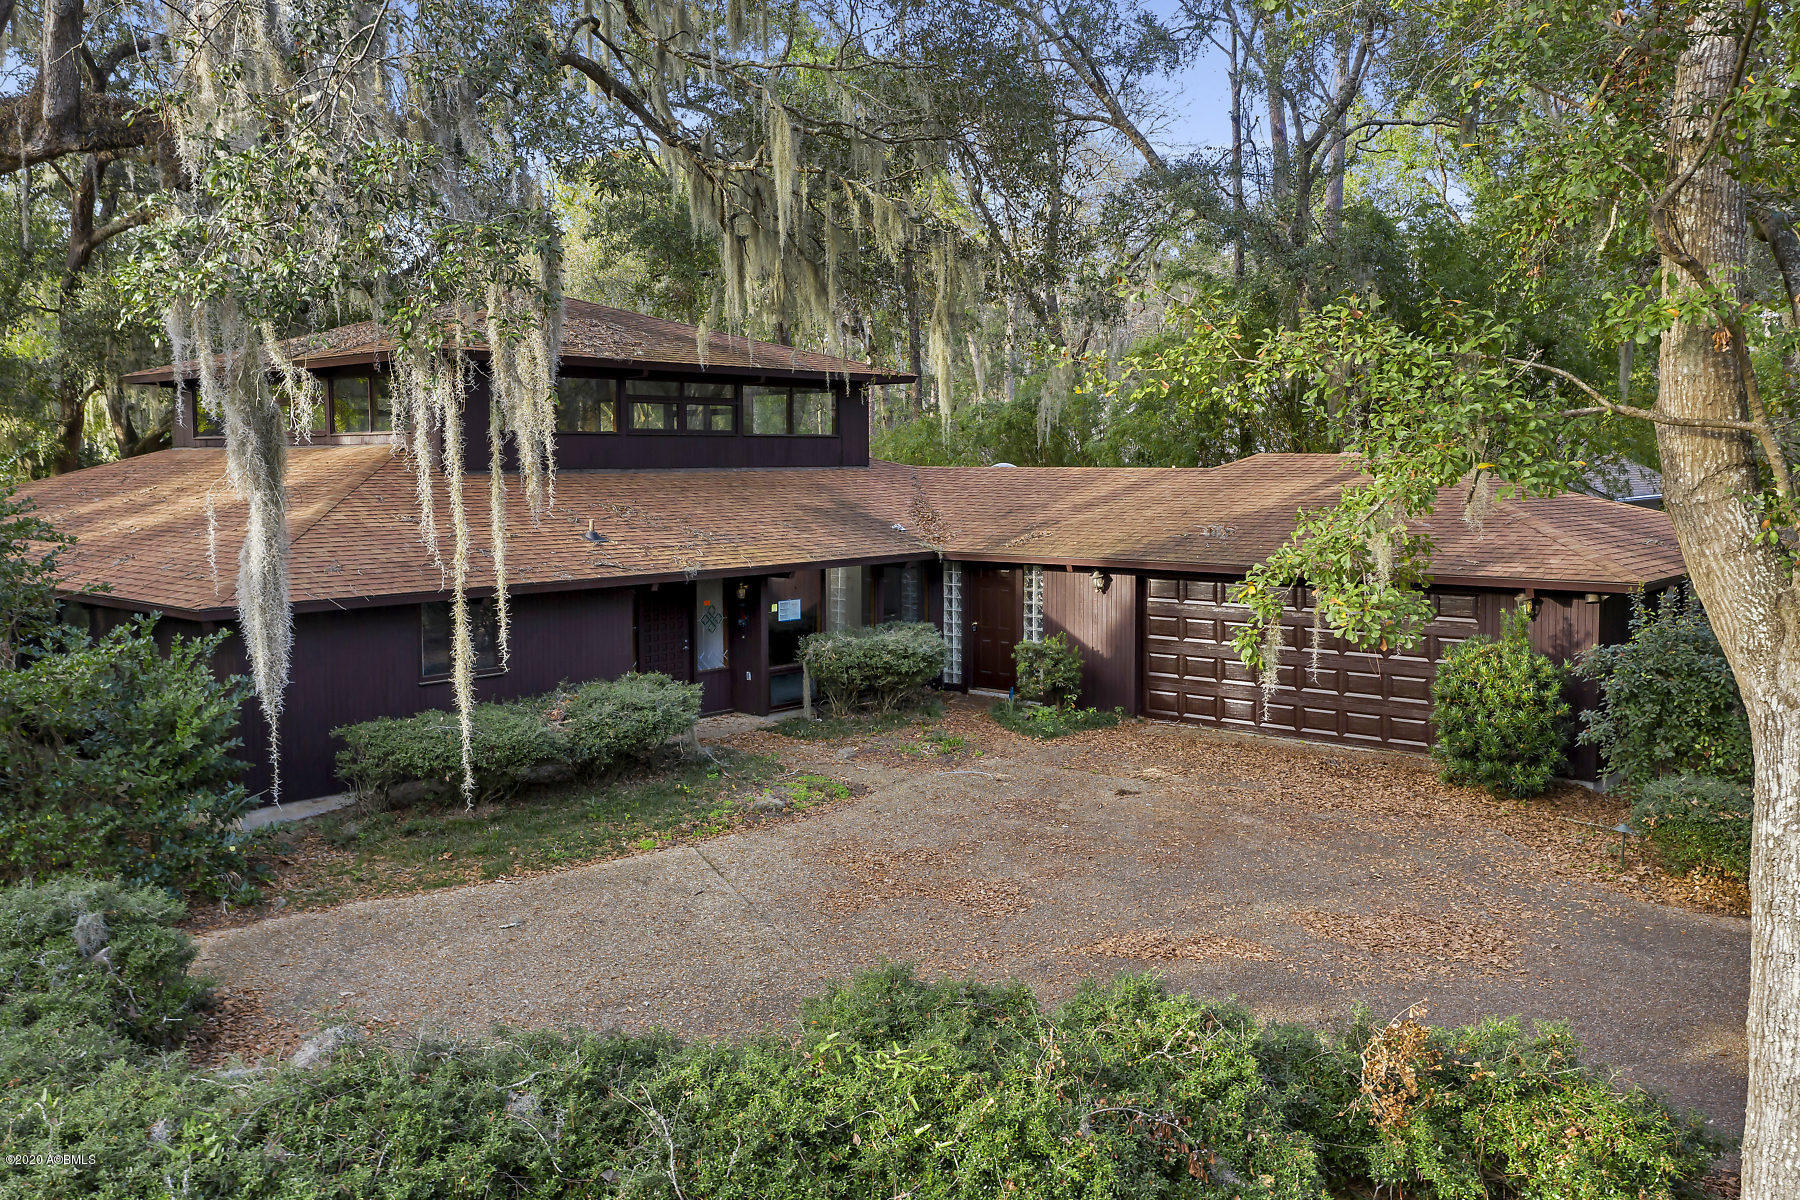 Photo of 5 Saw Timber Drive, Hilton Head Island, SC 29926